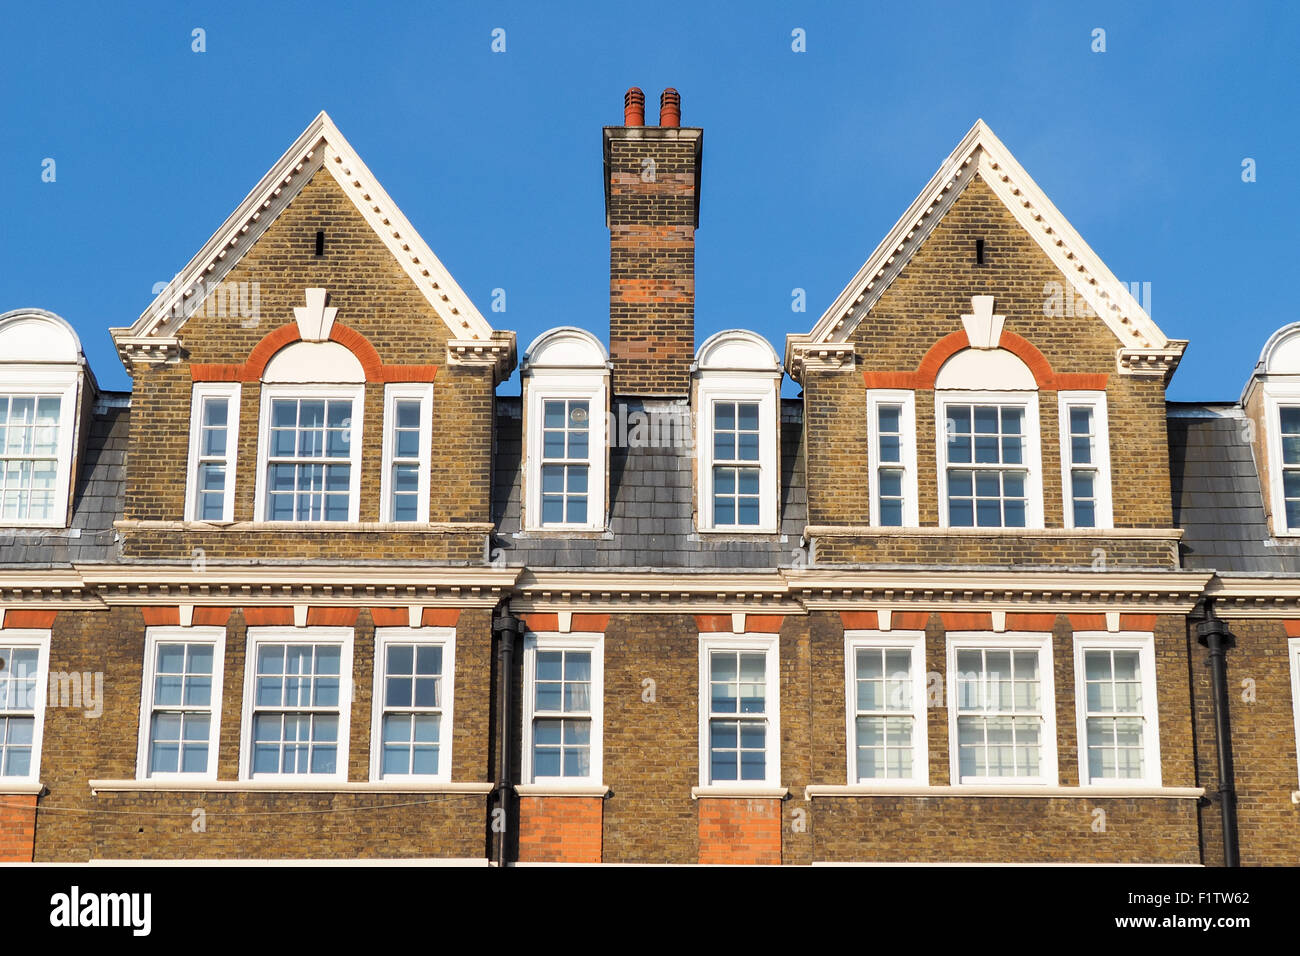 Facade of buildings in London with traditional roofs and a chimney - Stock Image